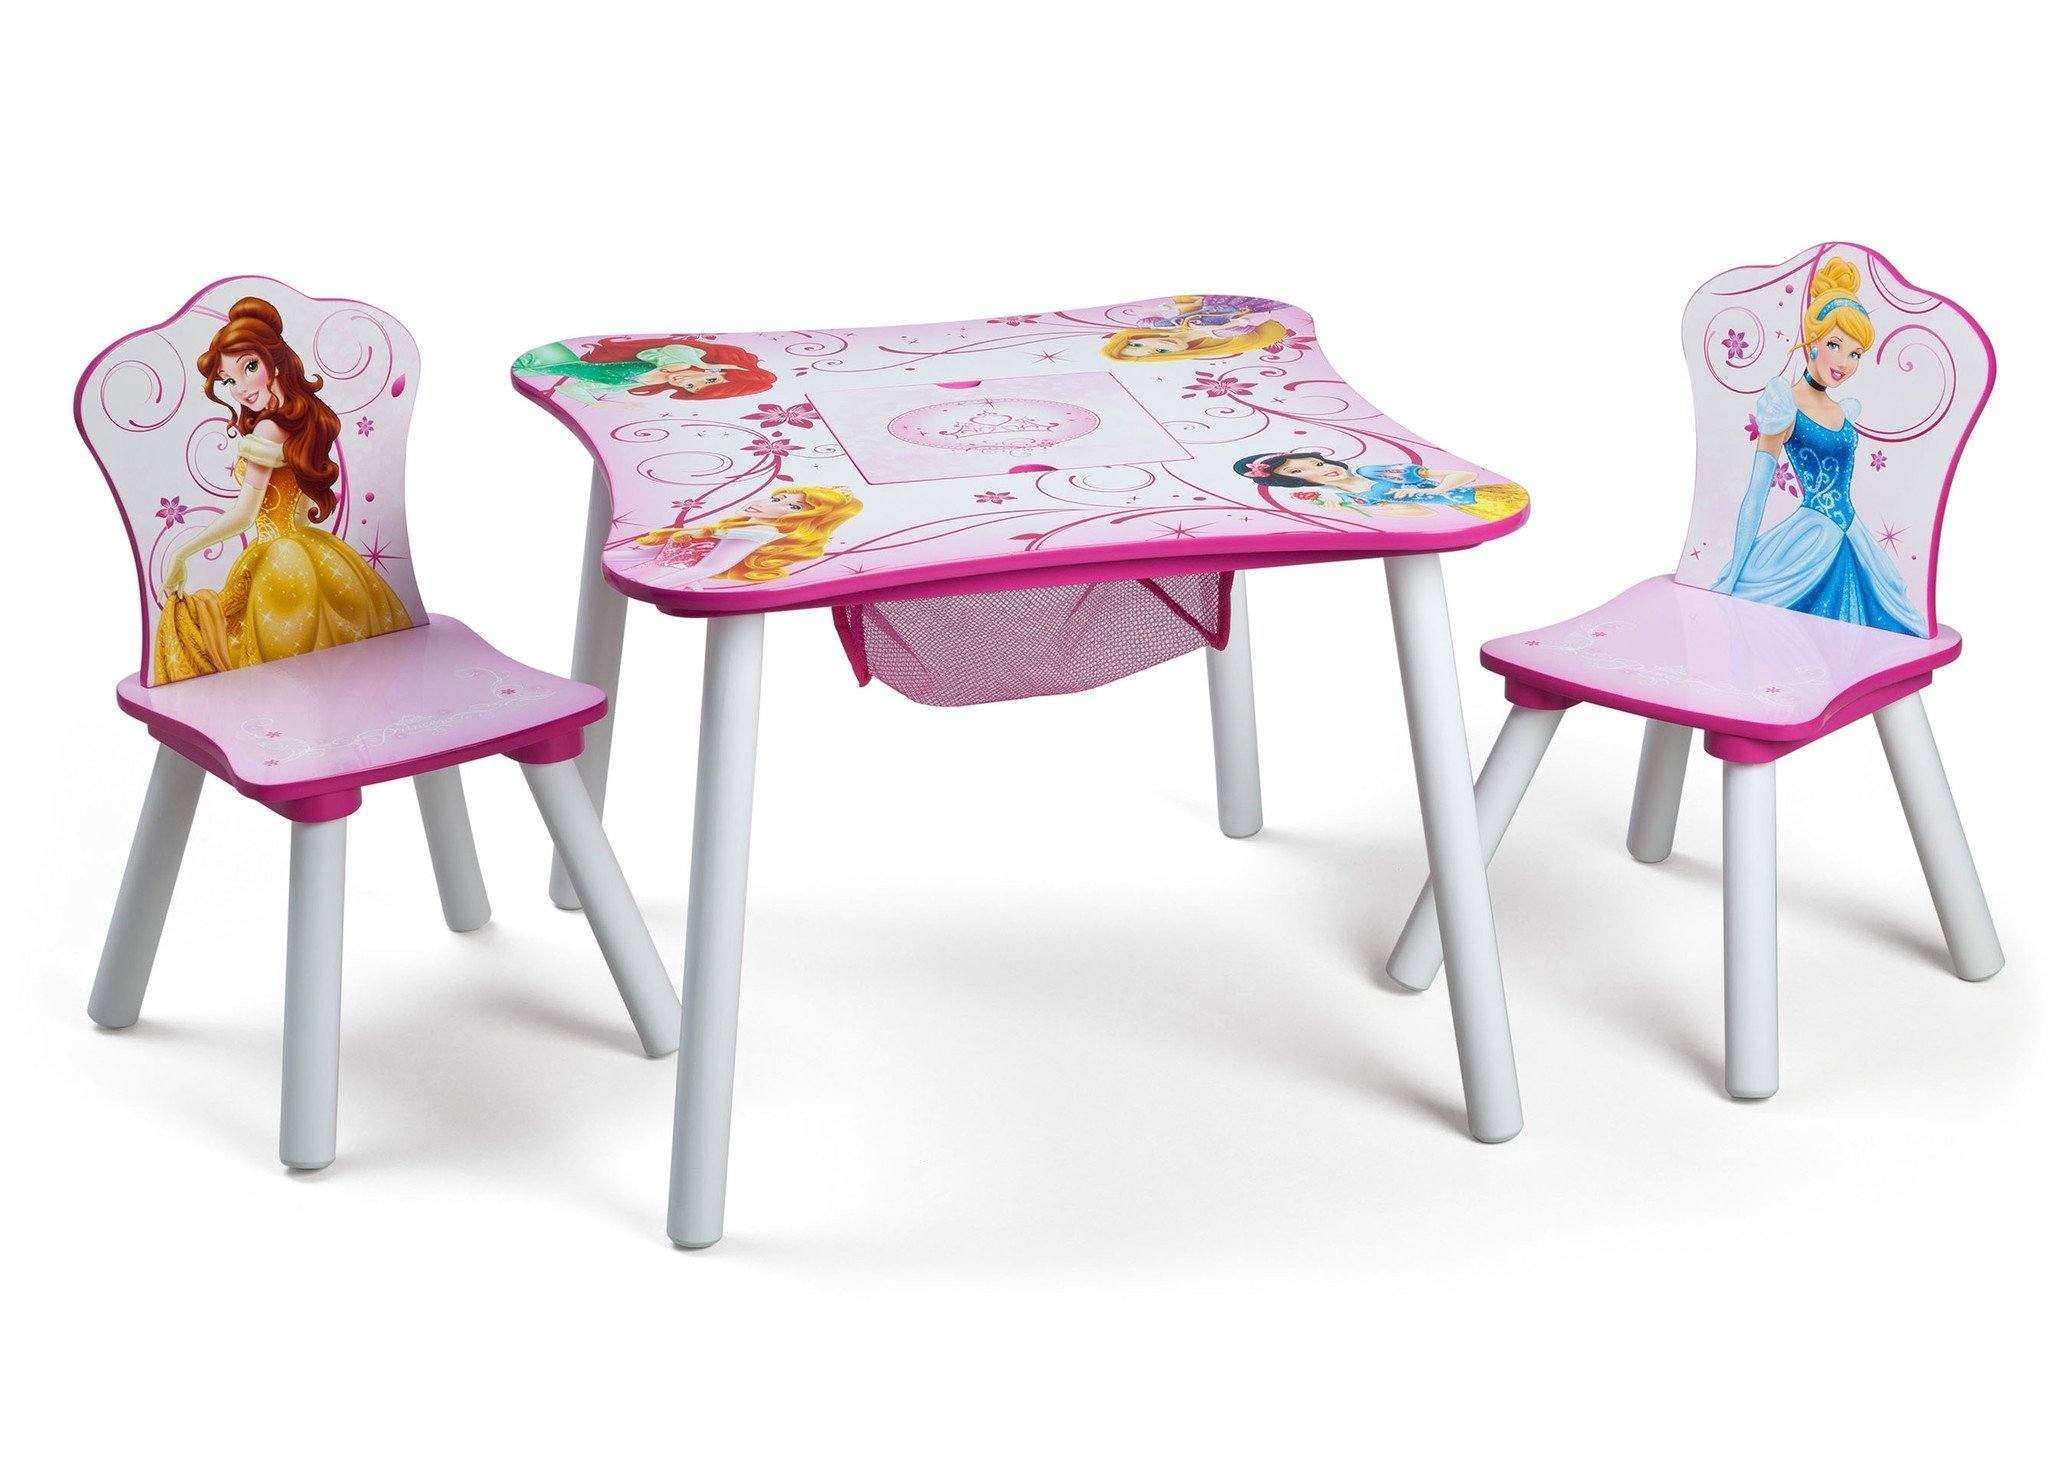 Interesting Disney Princess Chair And Table Set Images - Best Image ... Interesting Disney Princess Chair And Table Set Images Best Image  sc 1 st  Best Image Engine & Interesting Disney Princess Chair And Table Set Images - Best Image ...